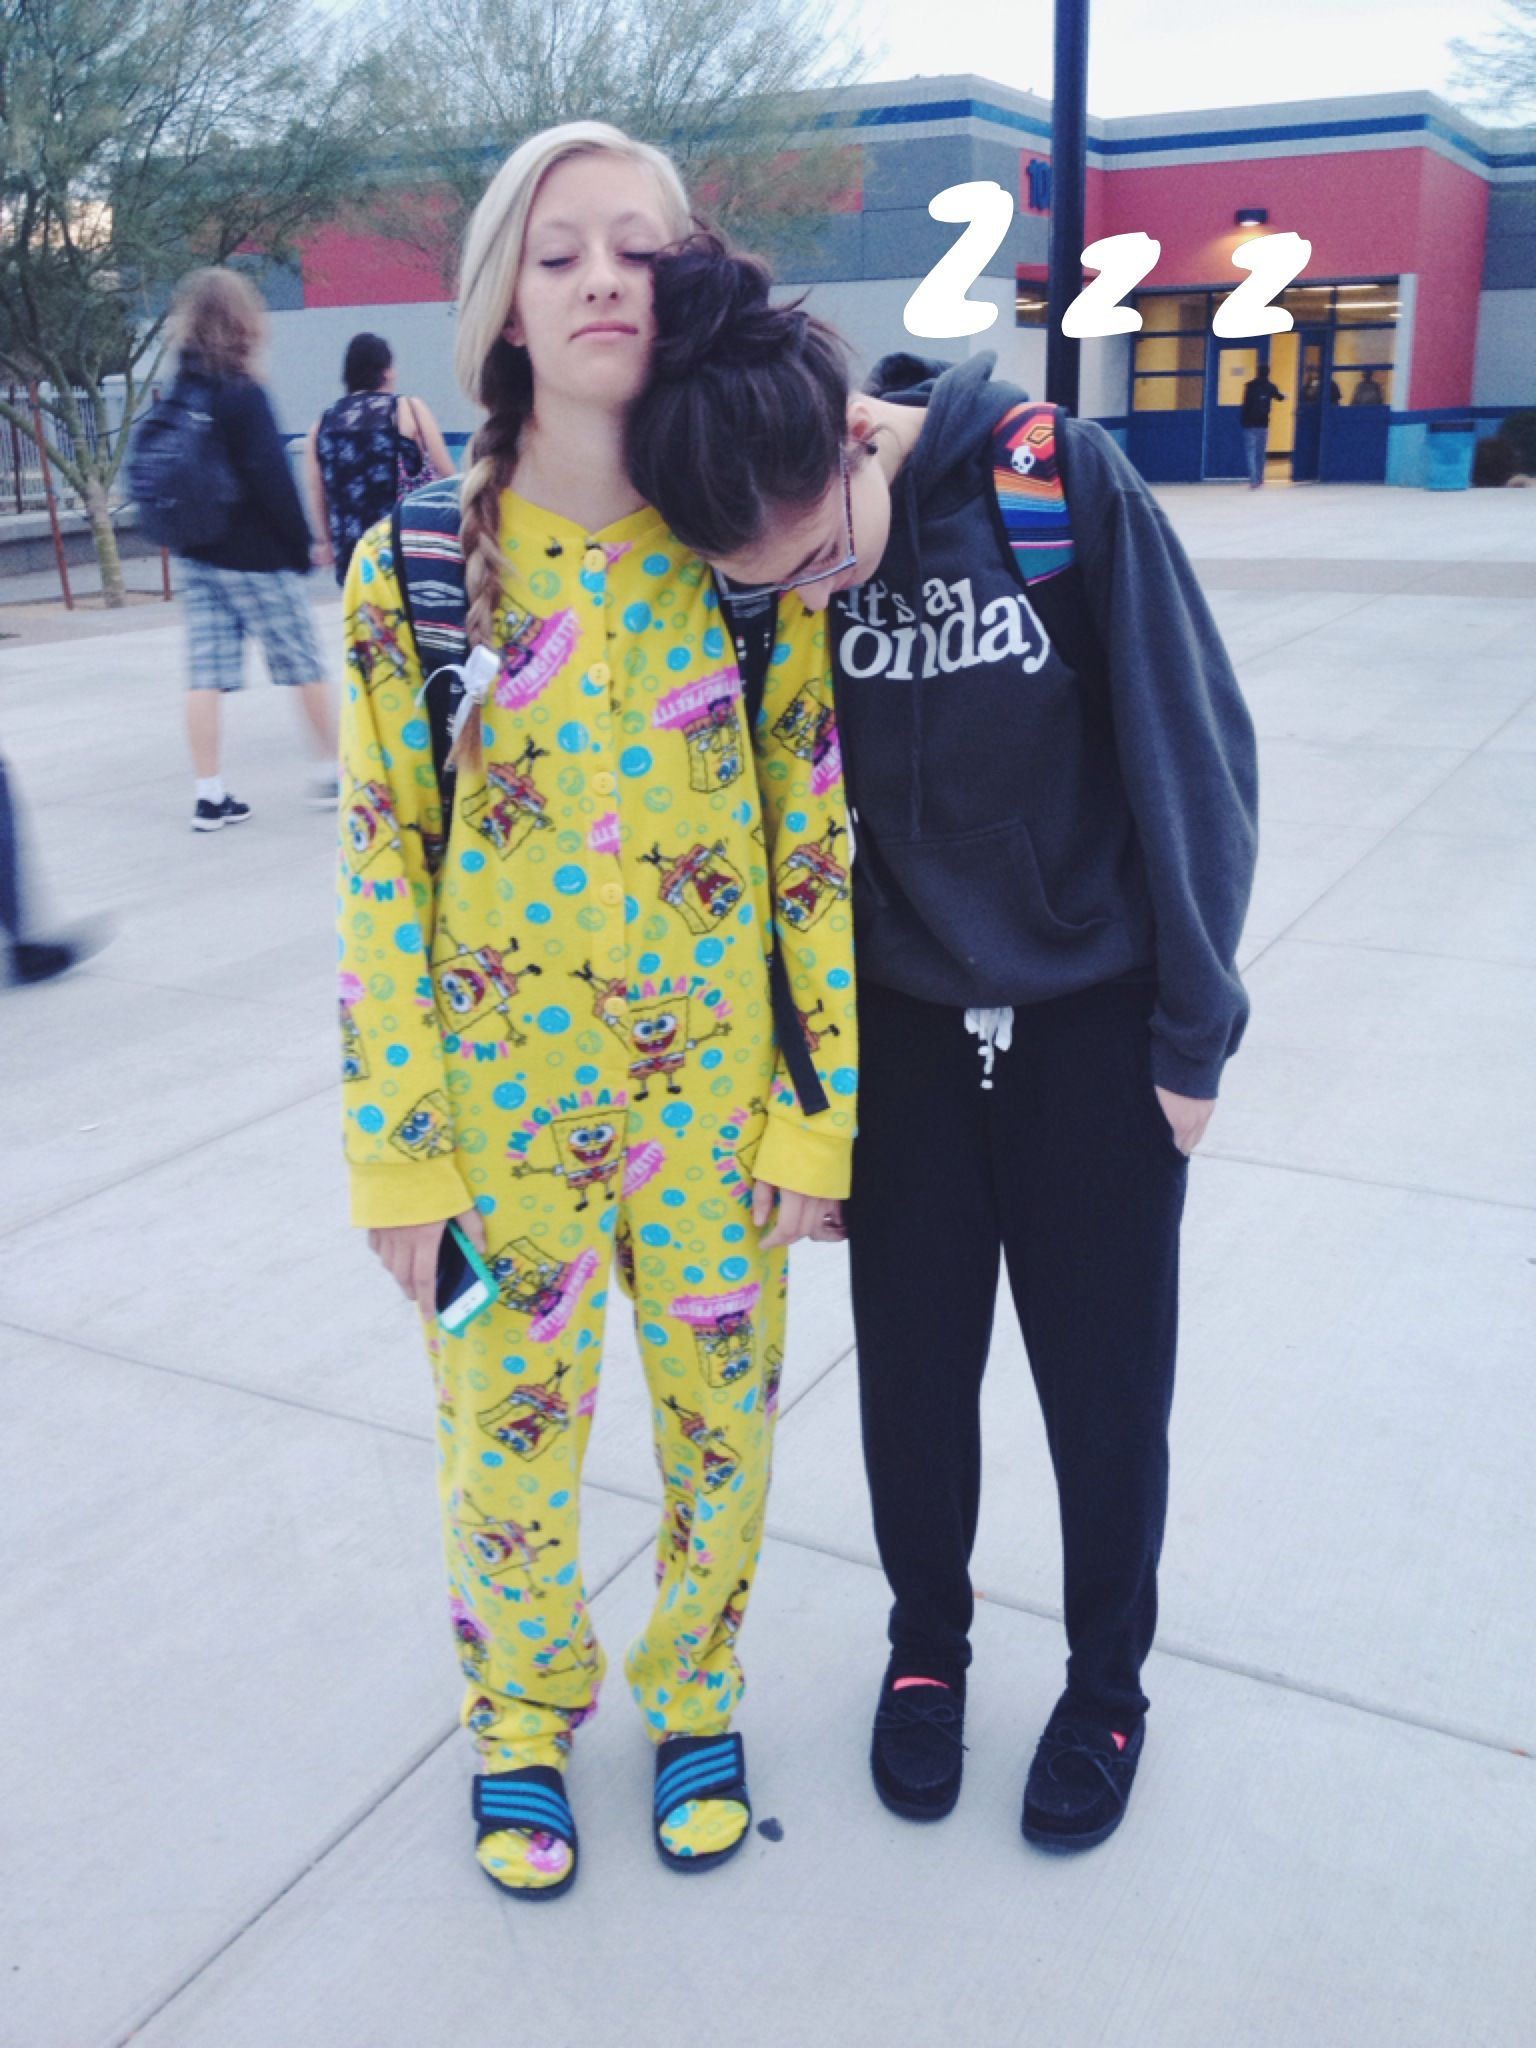 DVHS students dressed up for pajama day high school spirit